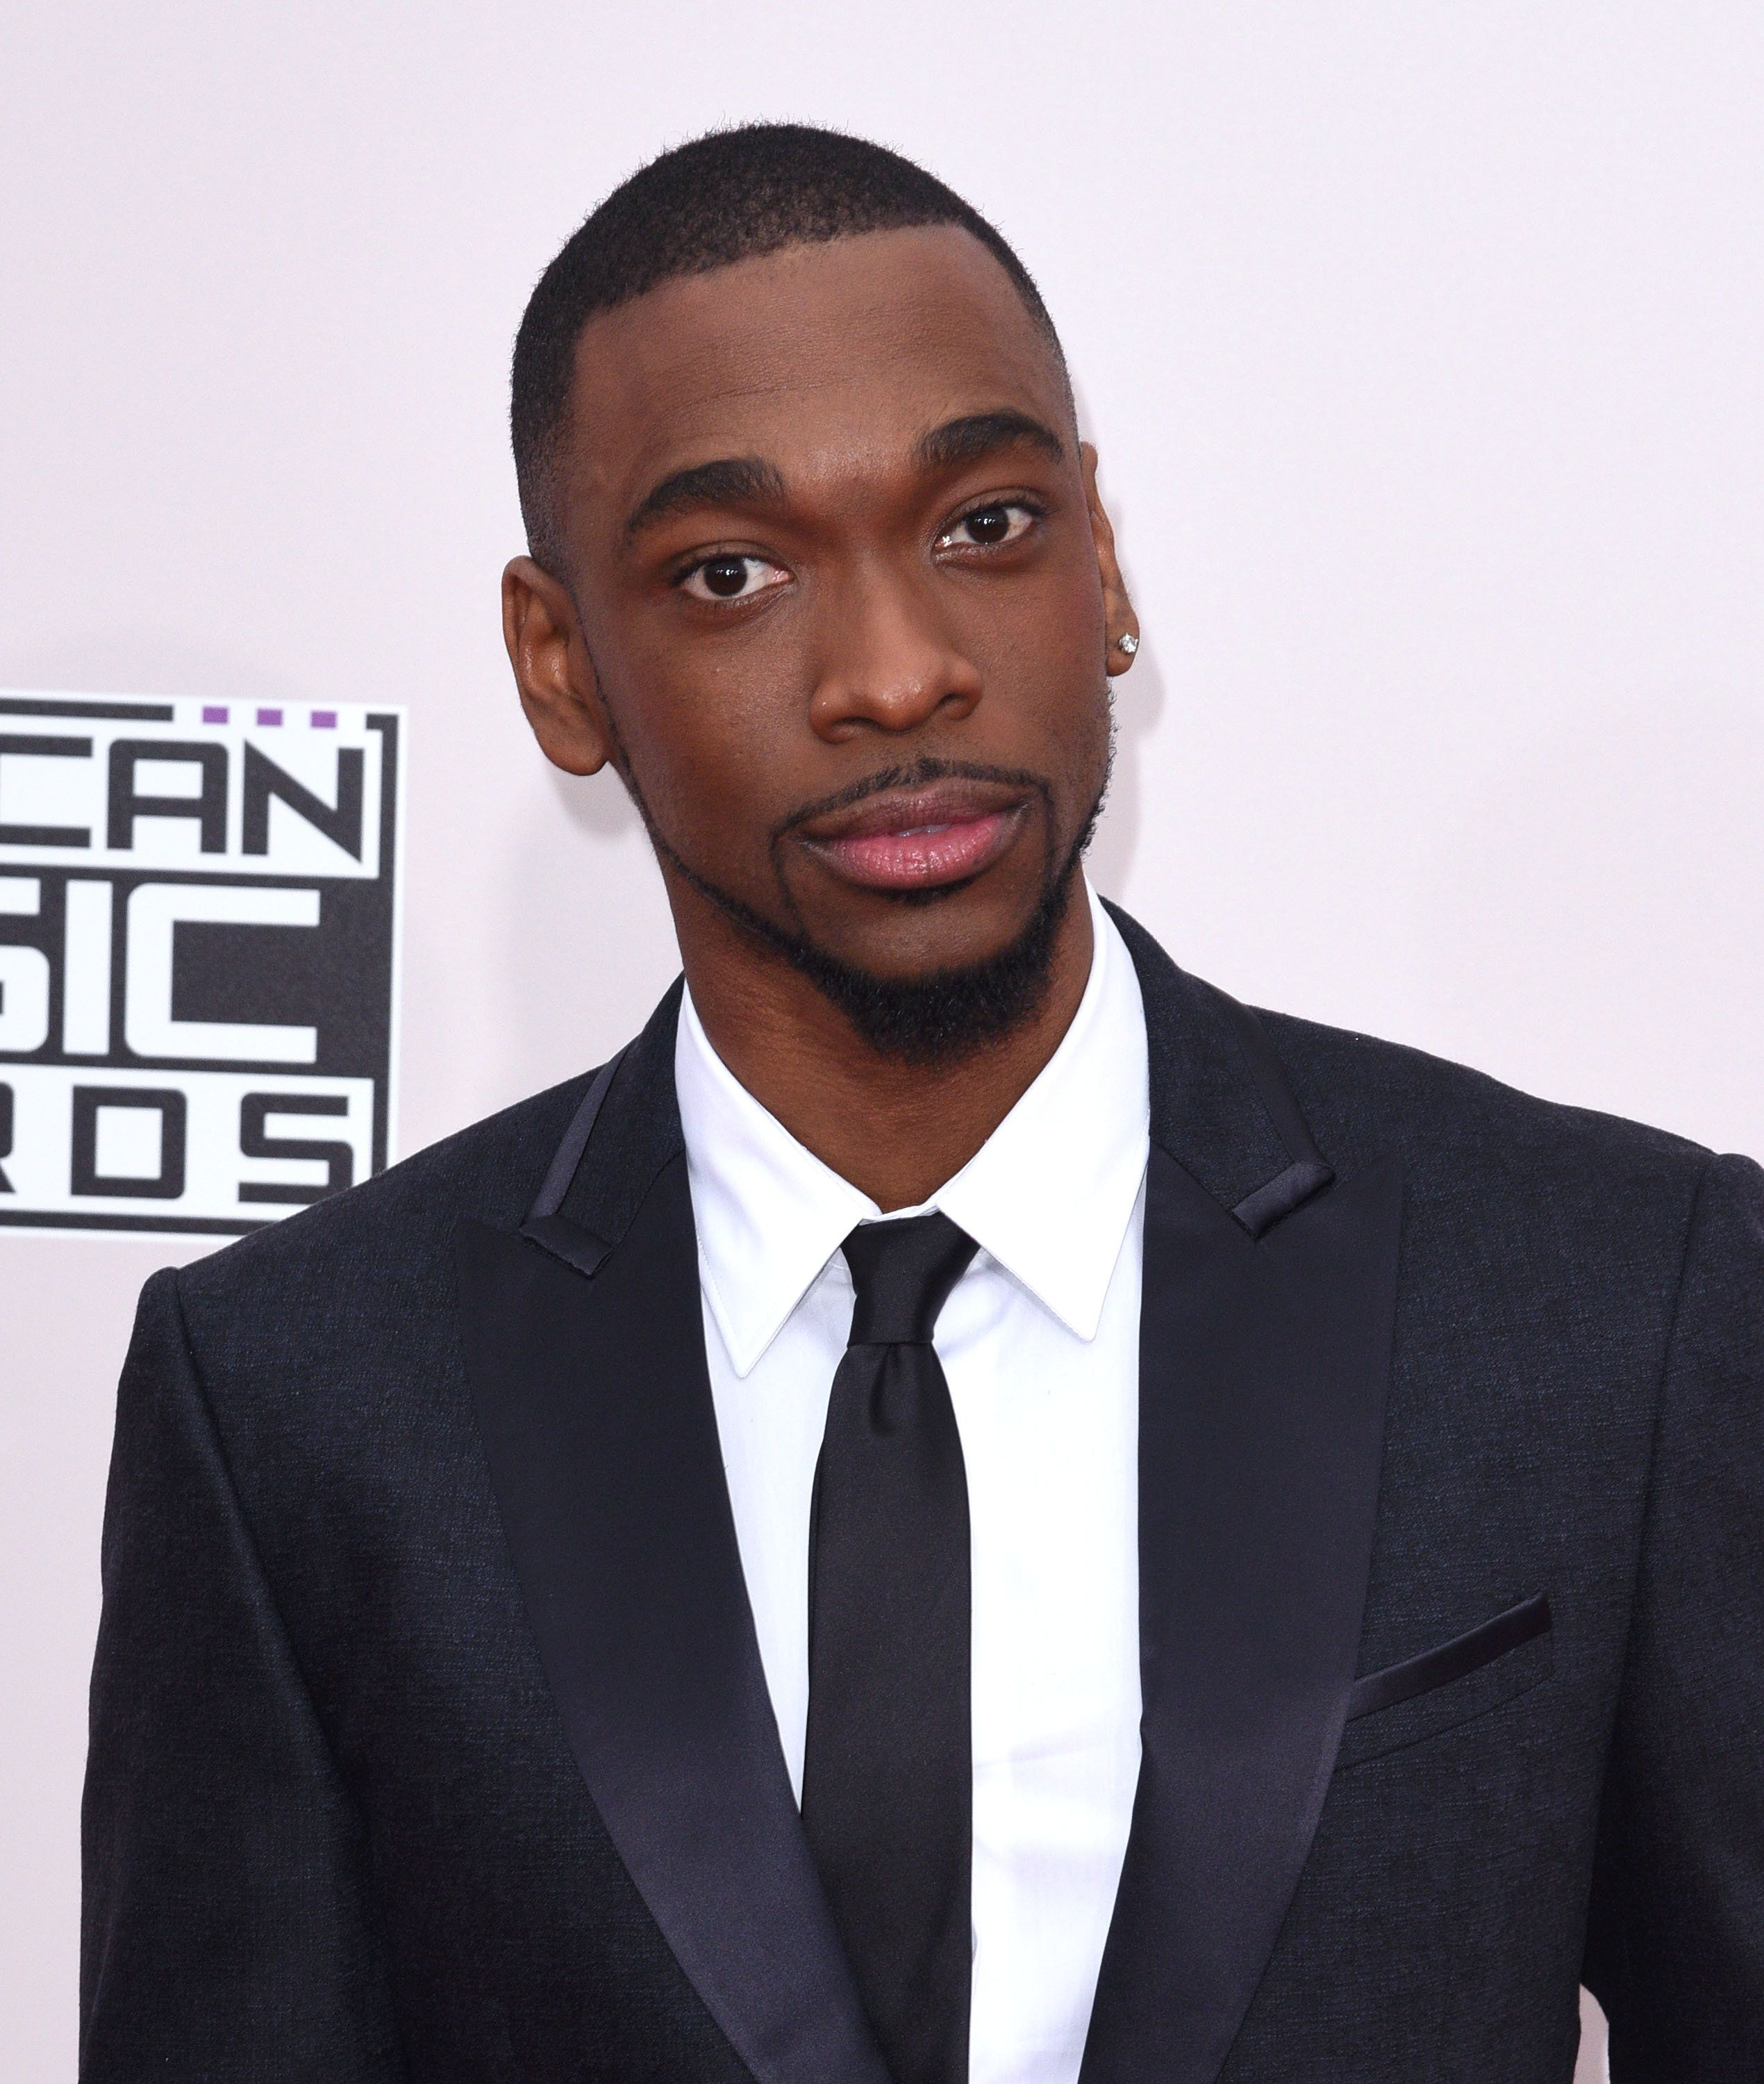 LOS ANGELES, CA - NOVEMBER 20:  Actor Jay Pharoah attends the 2016 American Music Awards at Microsoft Theater on November 20, 2016 in Los Angeles, California.  (Photo by C Flanigan/Getty Images)